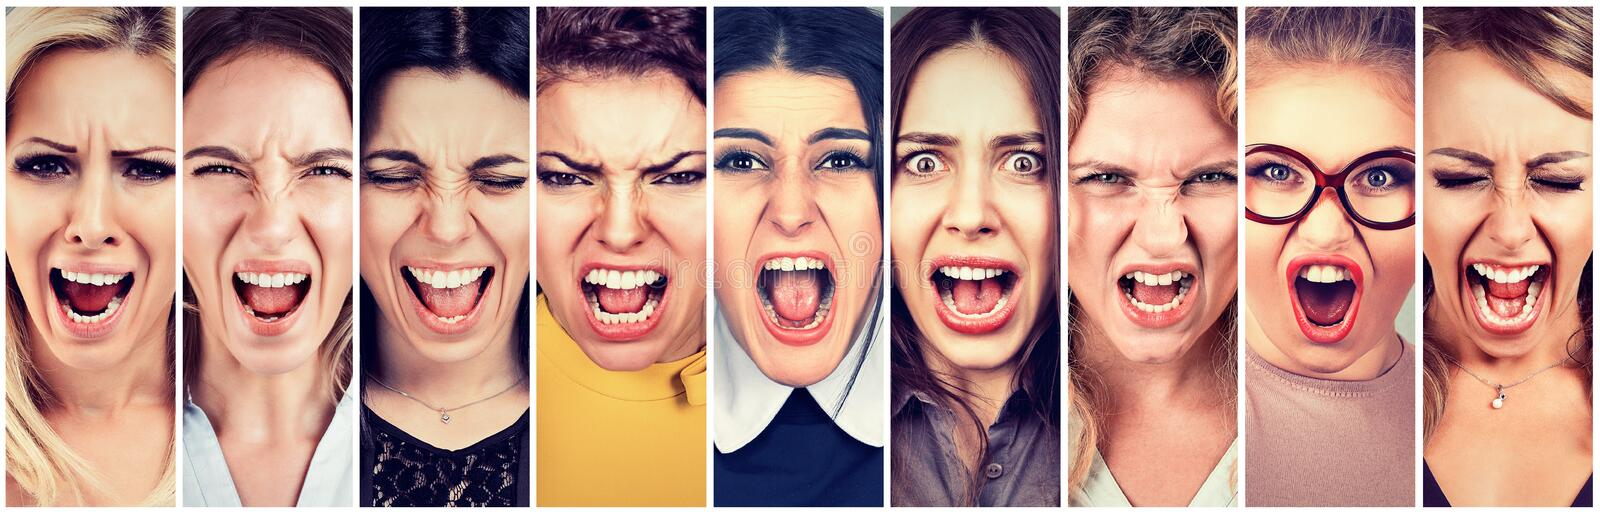 Group of angry people screaming royalty free stock image